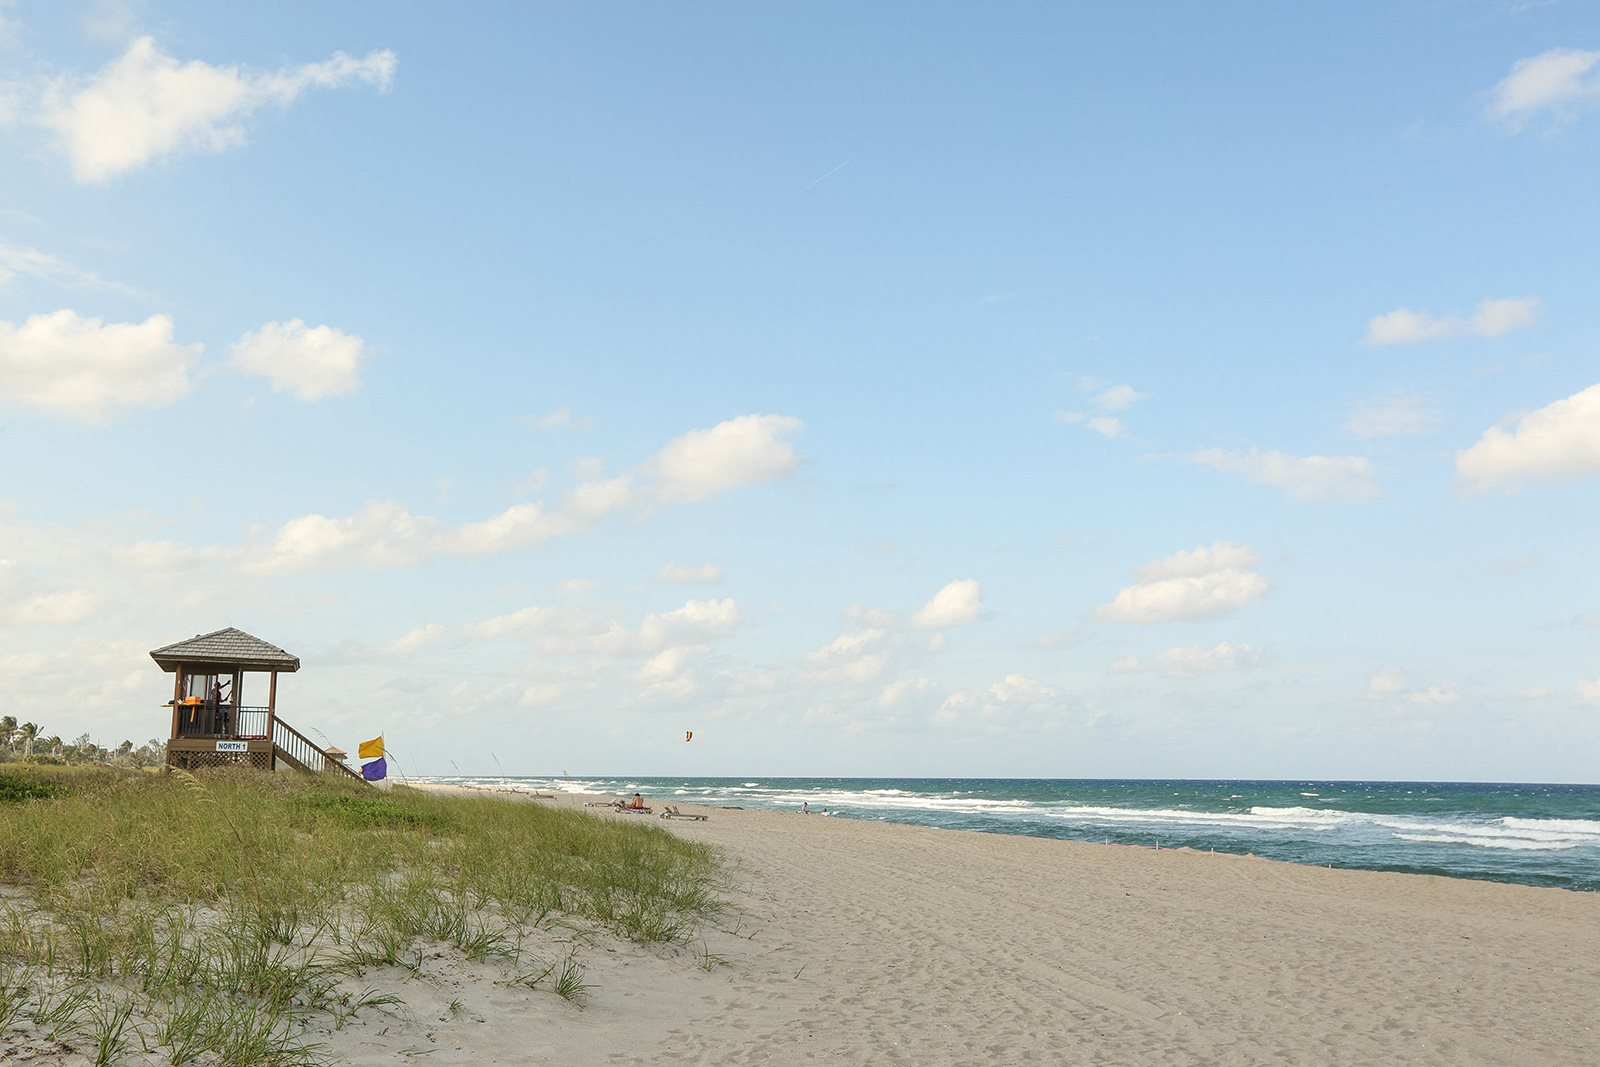 Just 1.5 miles away is Delray Beach, with over two miles of public beach-front at Windsor at Delray Beach, Florida